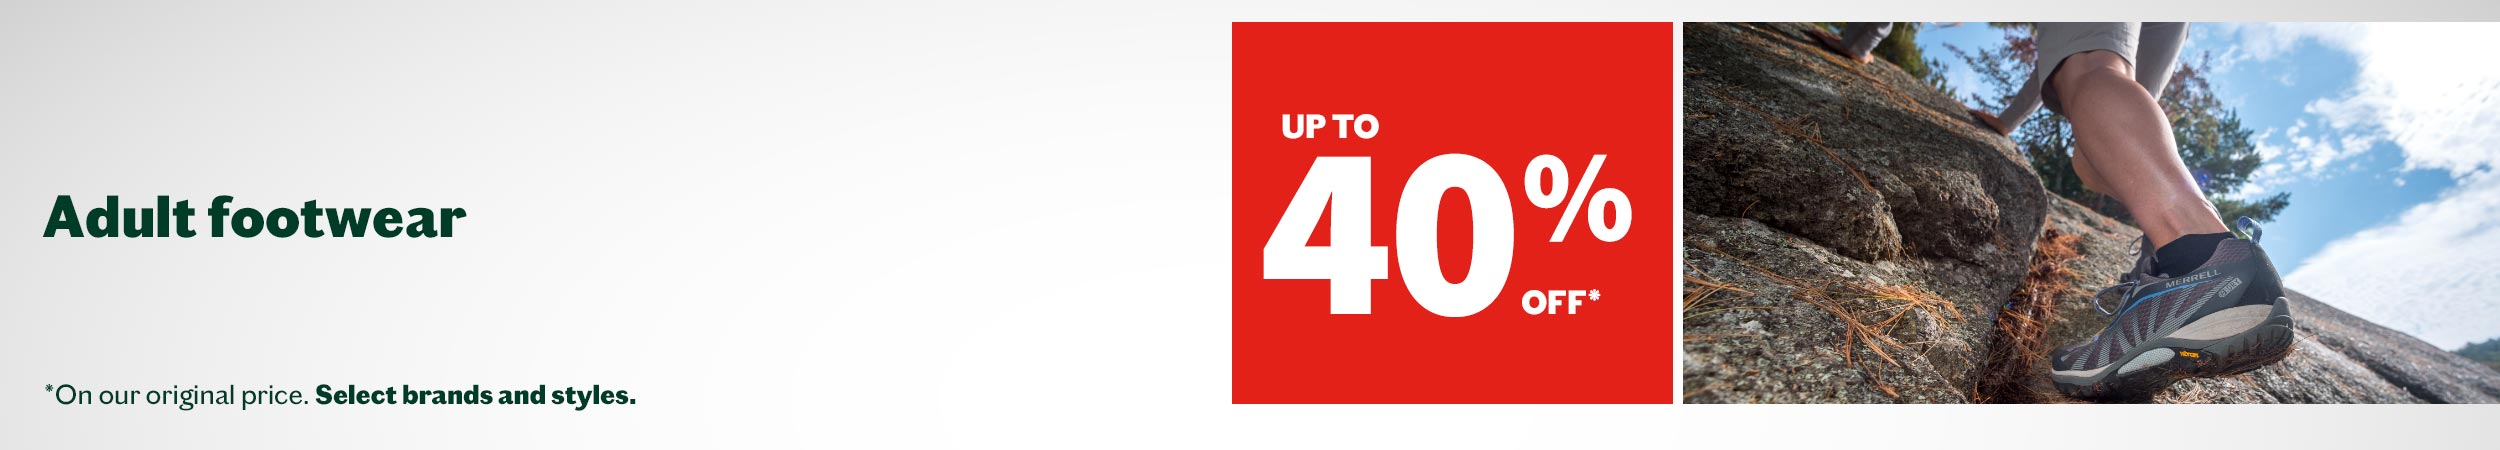 Up to 40% off adult footwear